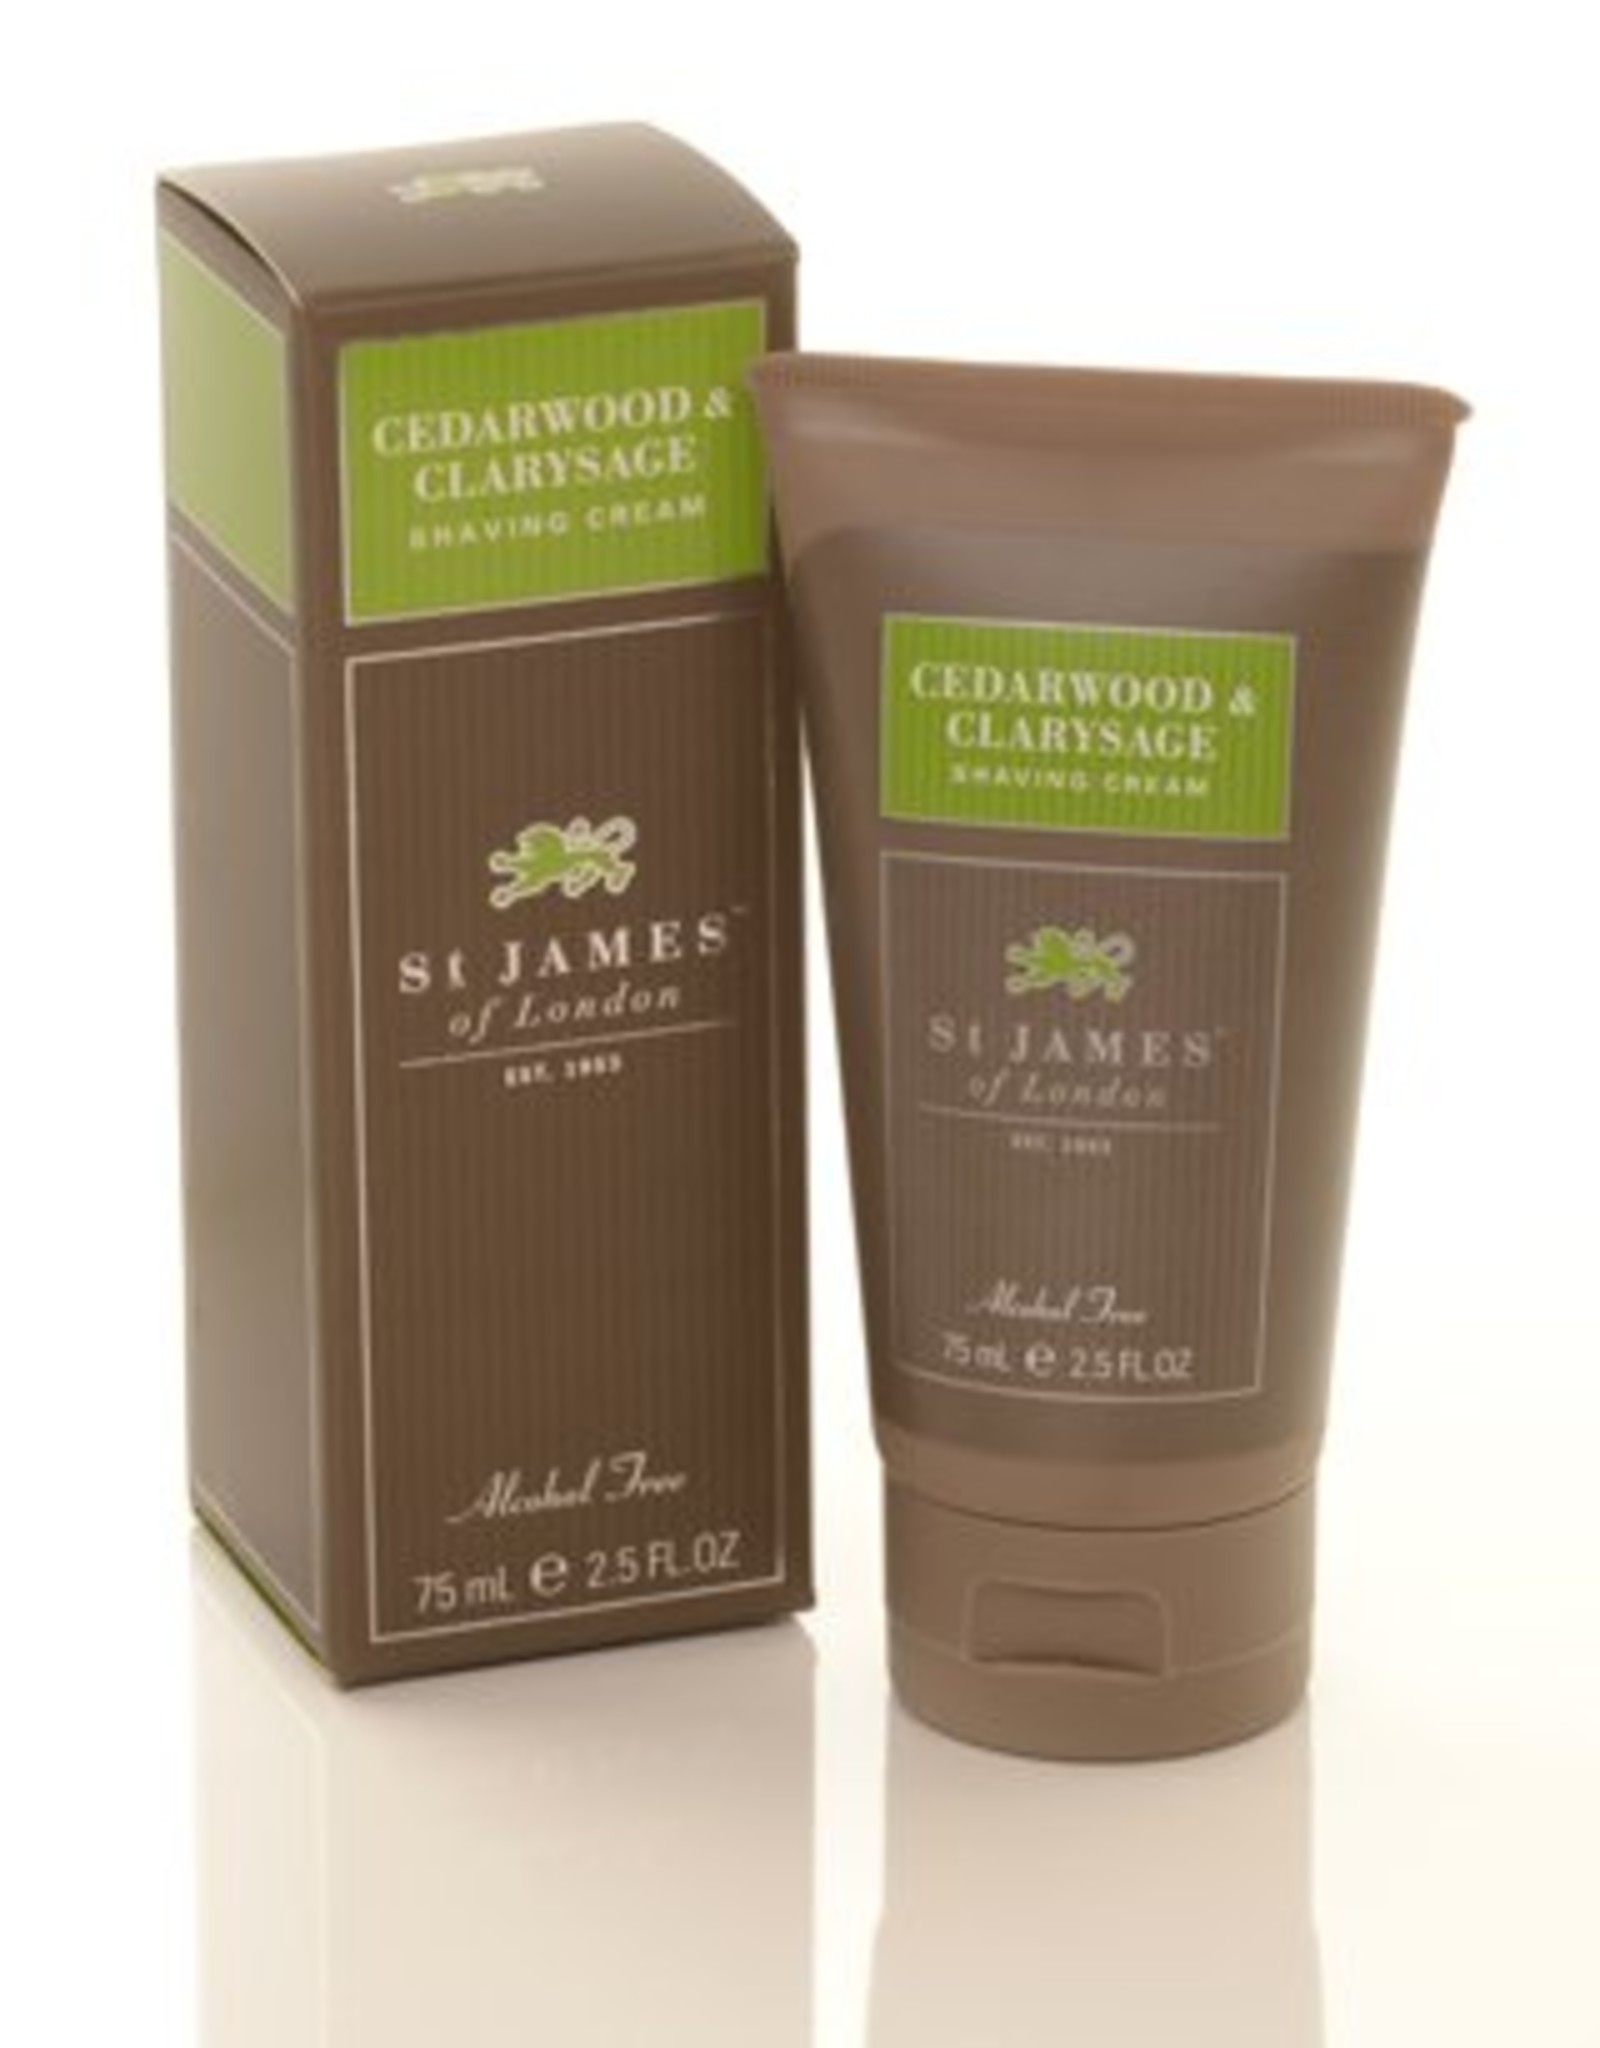 St. James Of London St. James Of London Shave Cream Tube 75g